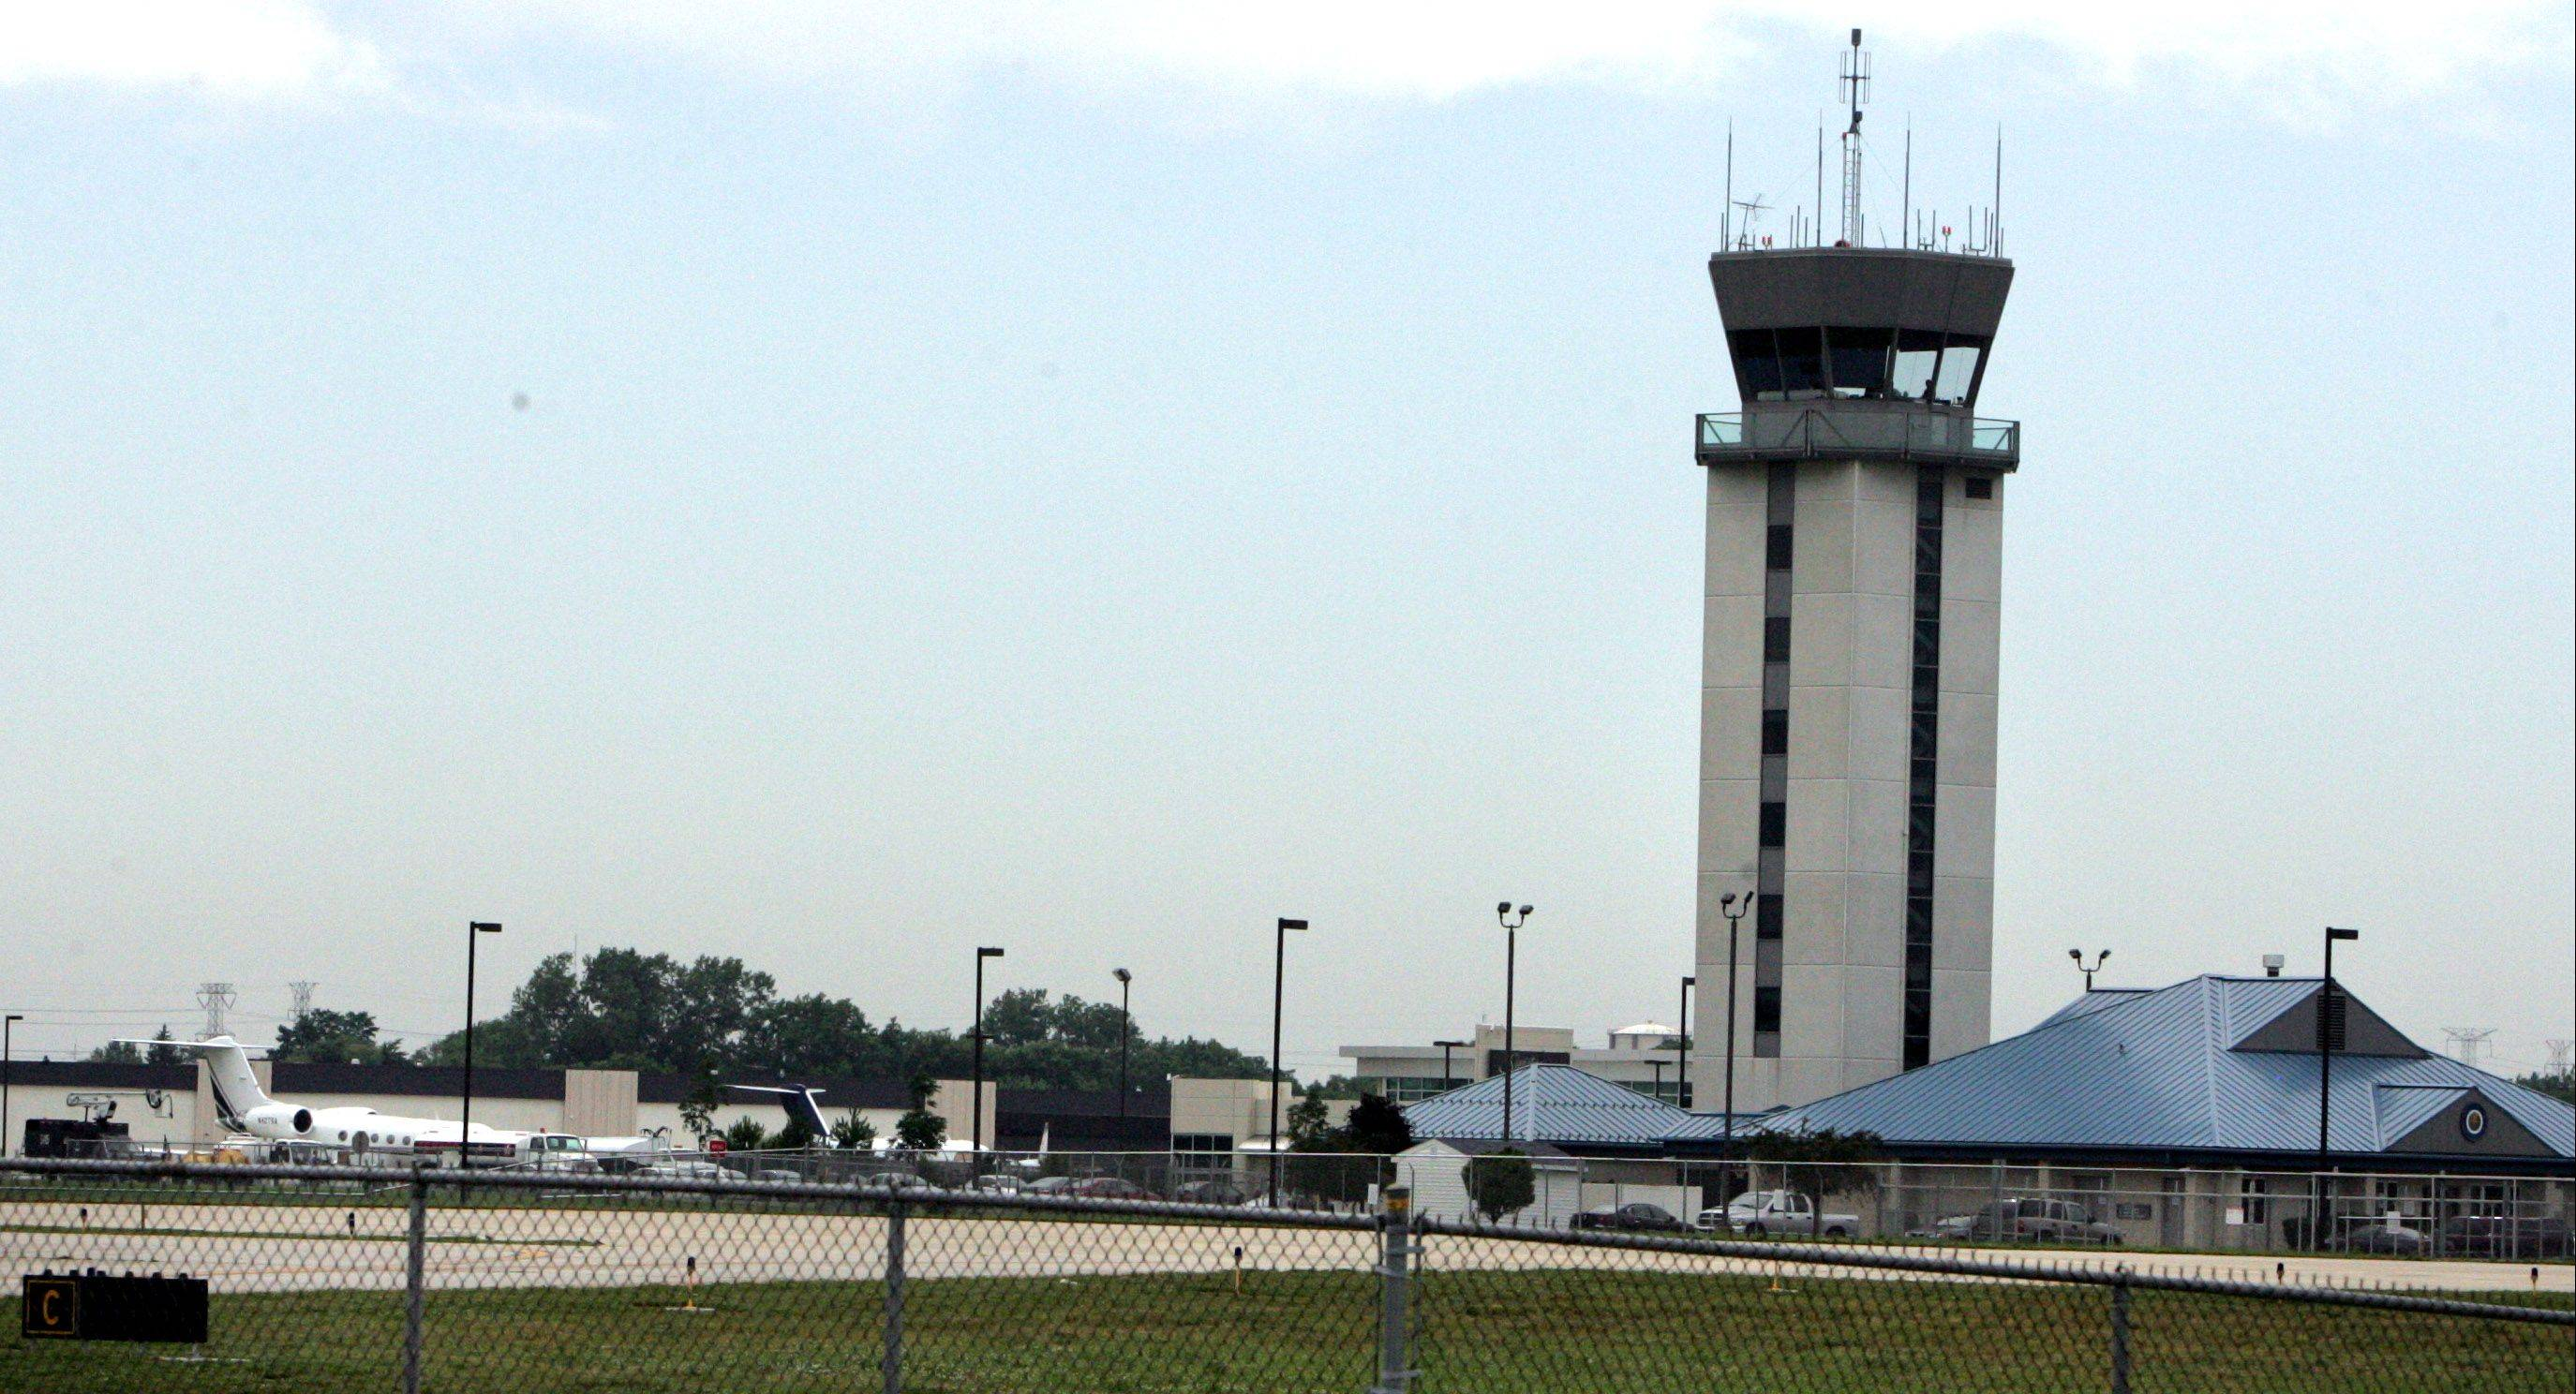 Plans to improve a taxiway at Chicago Executive Airport in Wheeling hinge on the airport's ability to obtain state and federal funding.